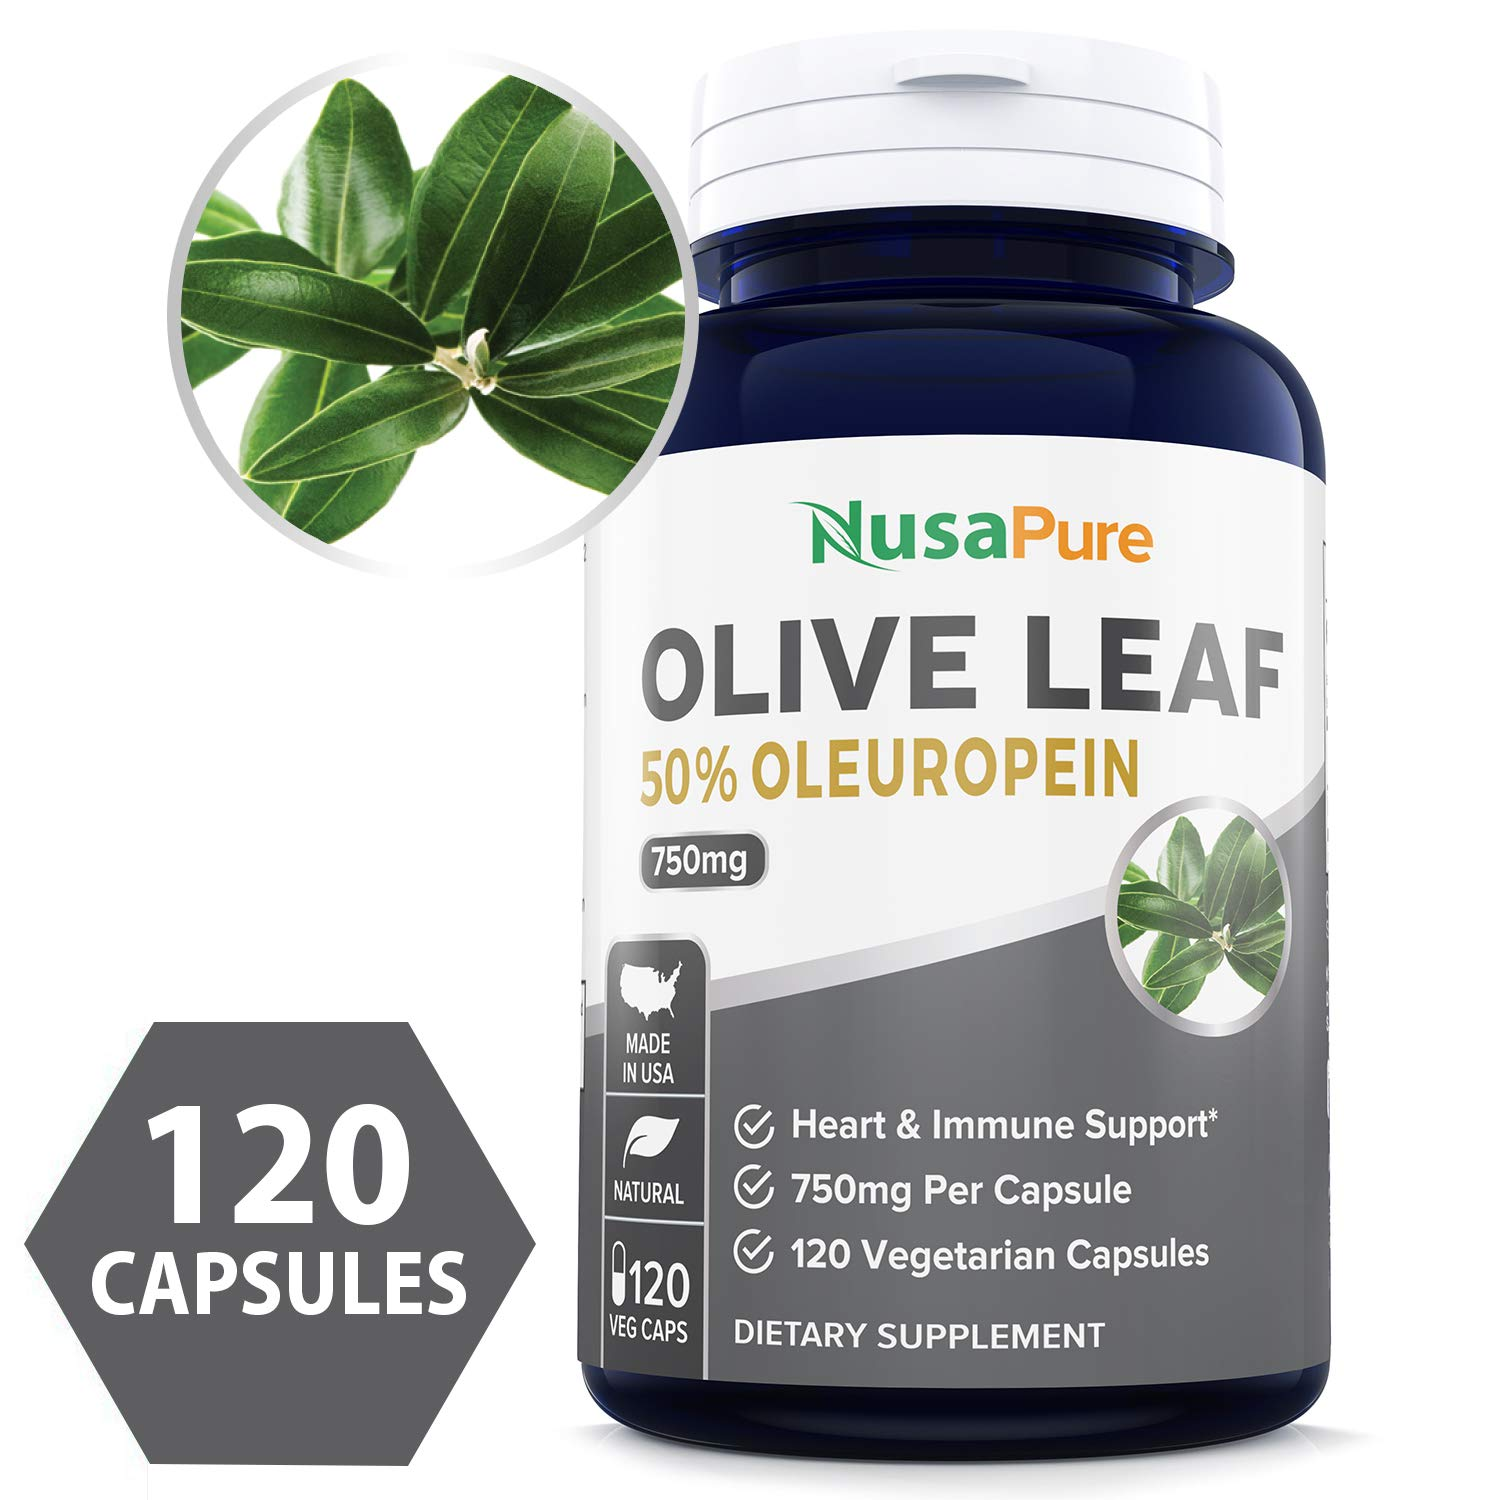 Olive Leaf Extract Non-GMO Gluten Free 750 mg – 50 Oleuropein – Vegetarian – Super Strength – Immune Support, Cardiovascular Health Antioxidant Supplement – No Oil – 120 Capsules